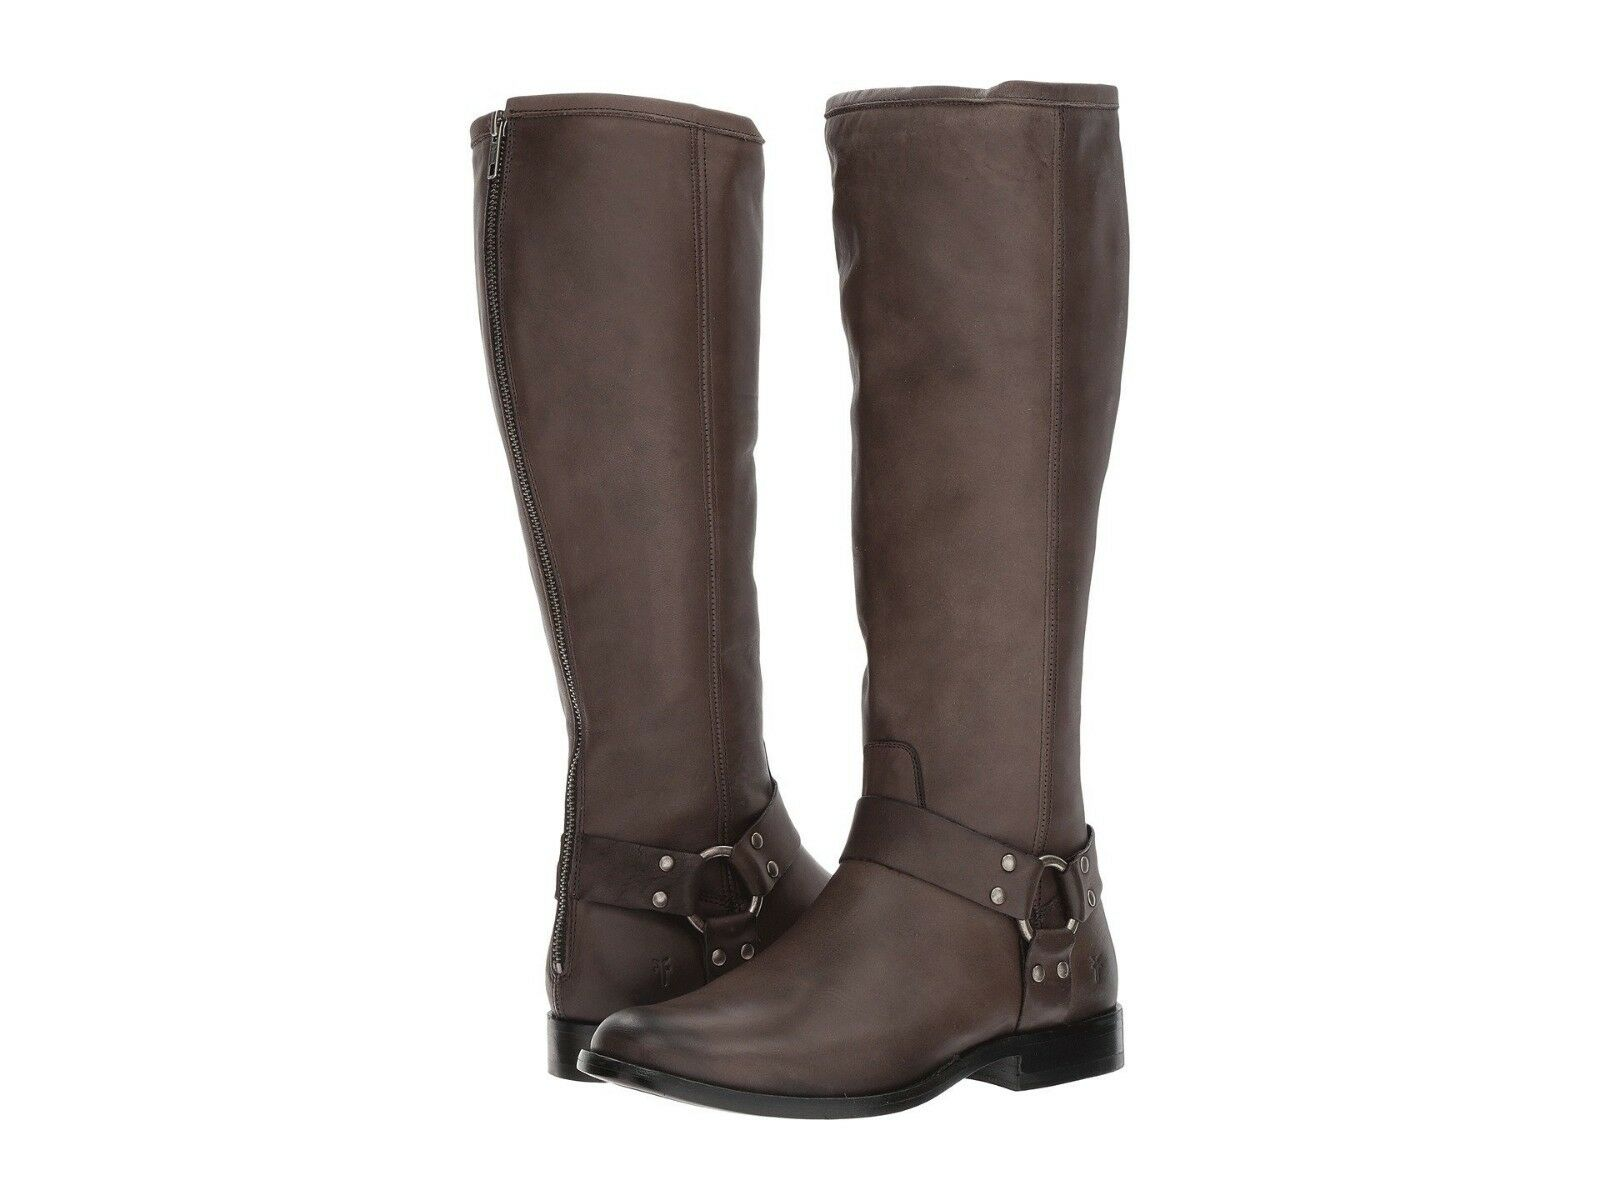 NEW Frye PHILLIP HARNESS Tall Leather Riding Boots Brown 7.5  378